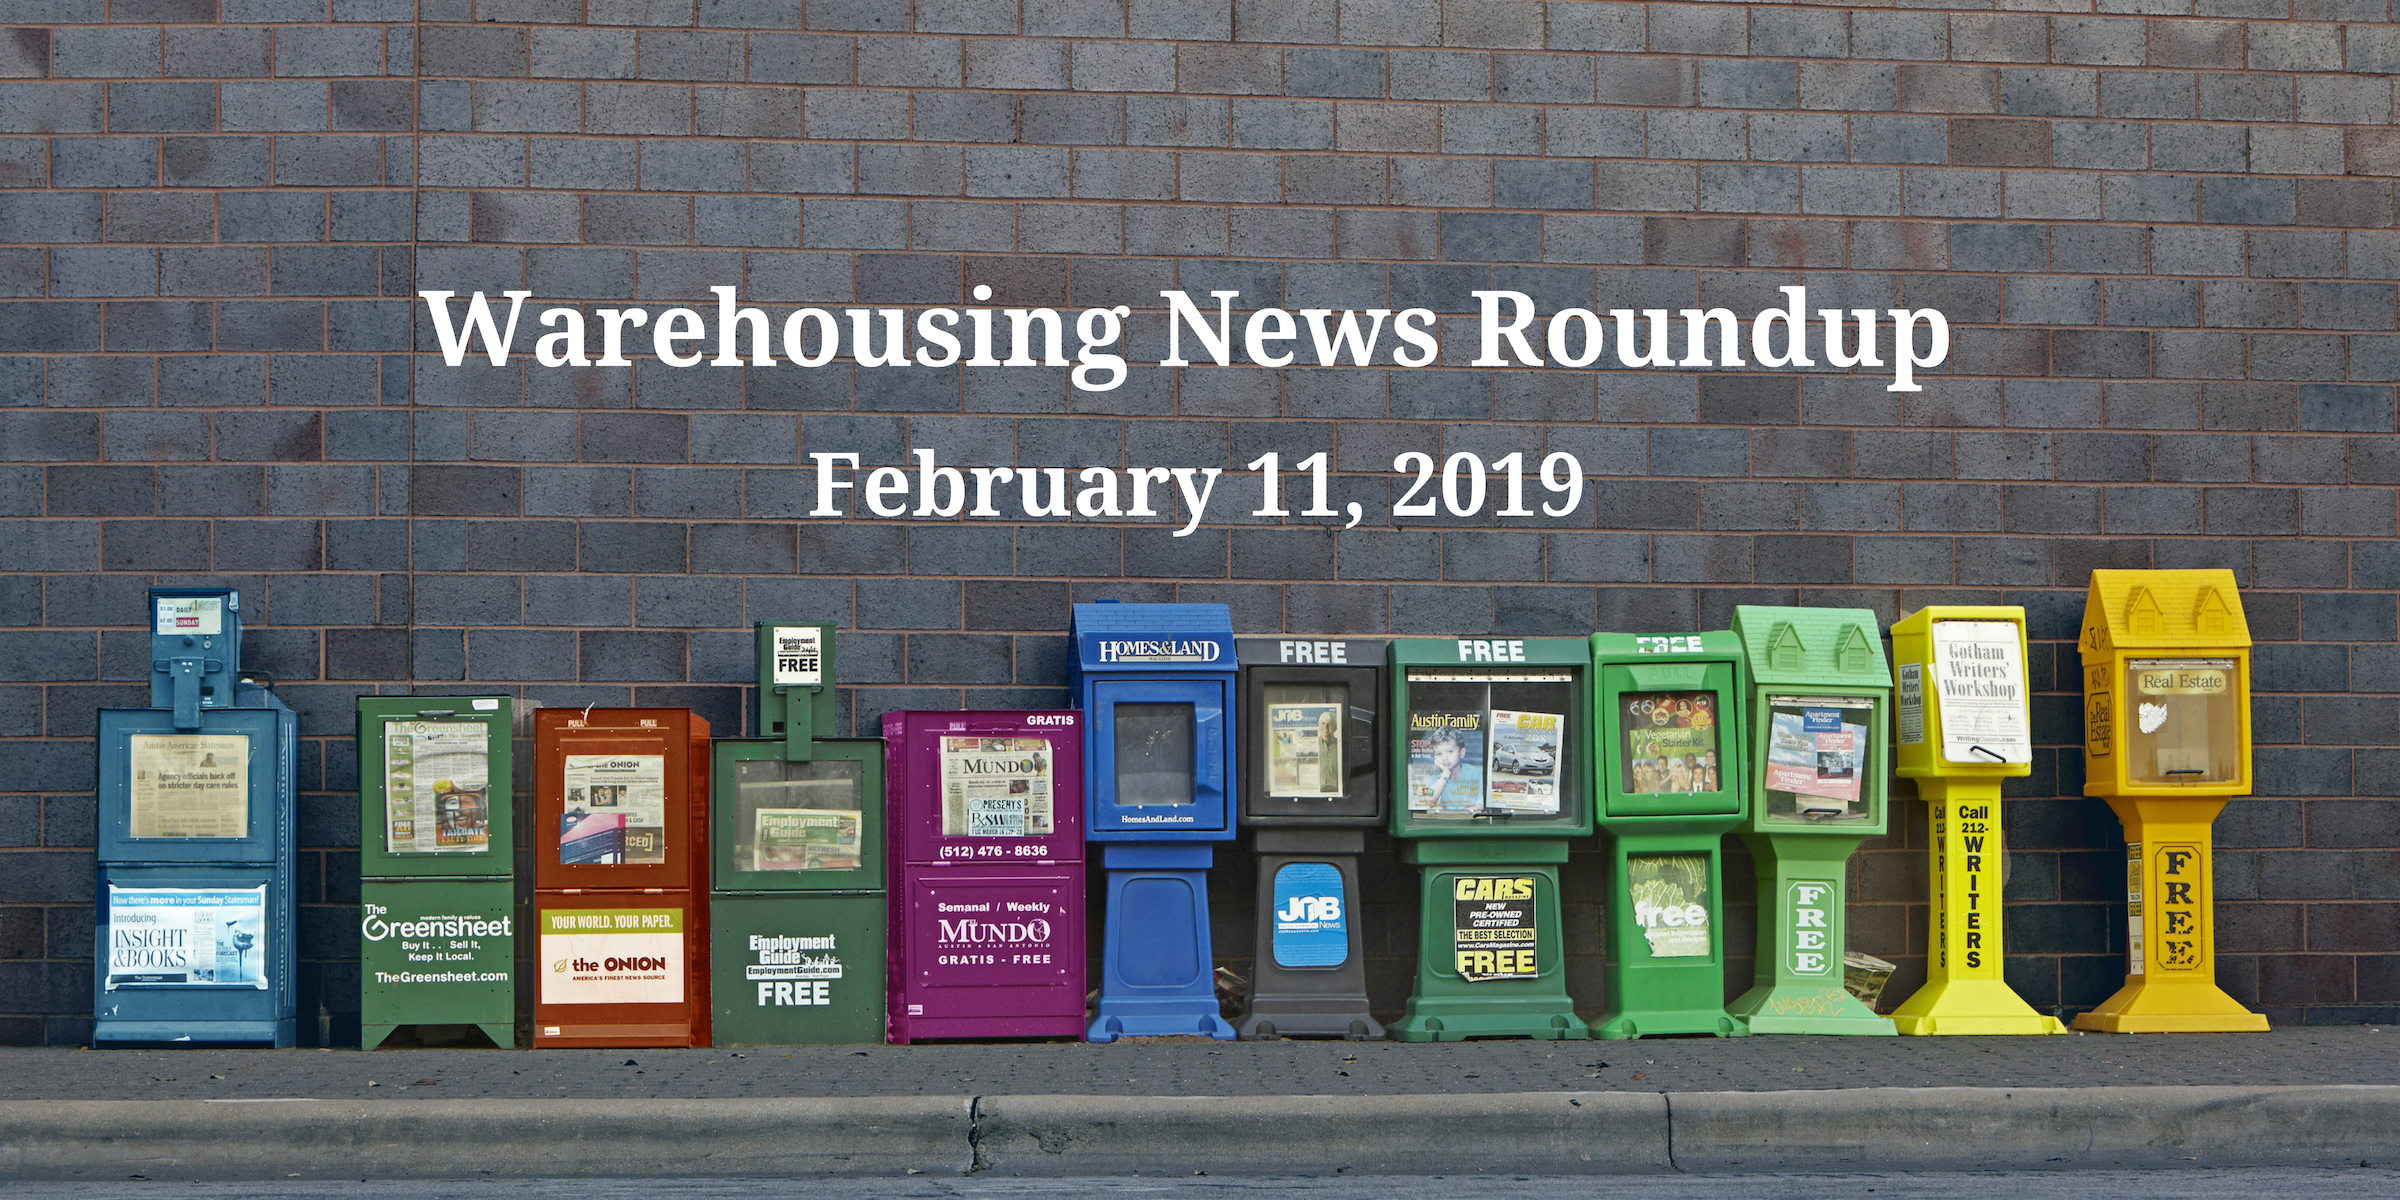 Warehousing News Roundup: February 11, 2019